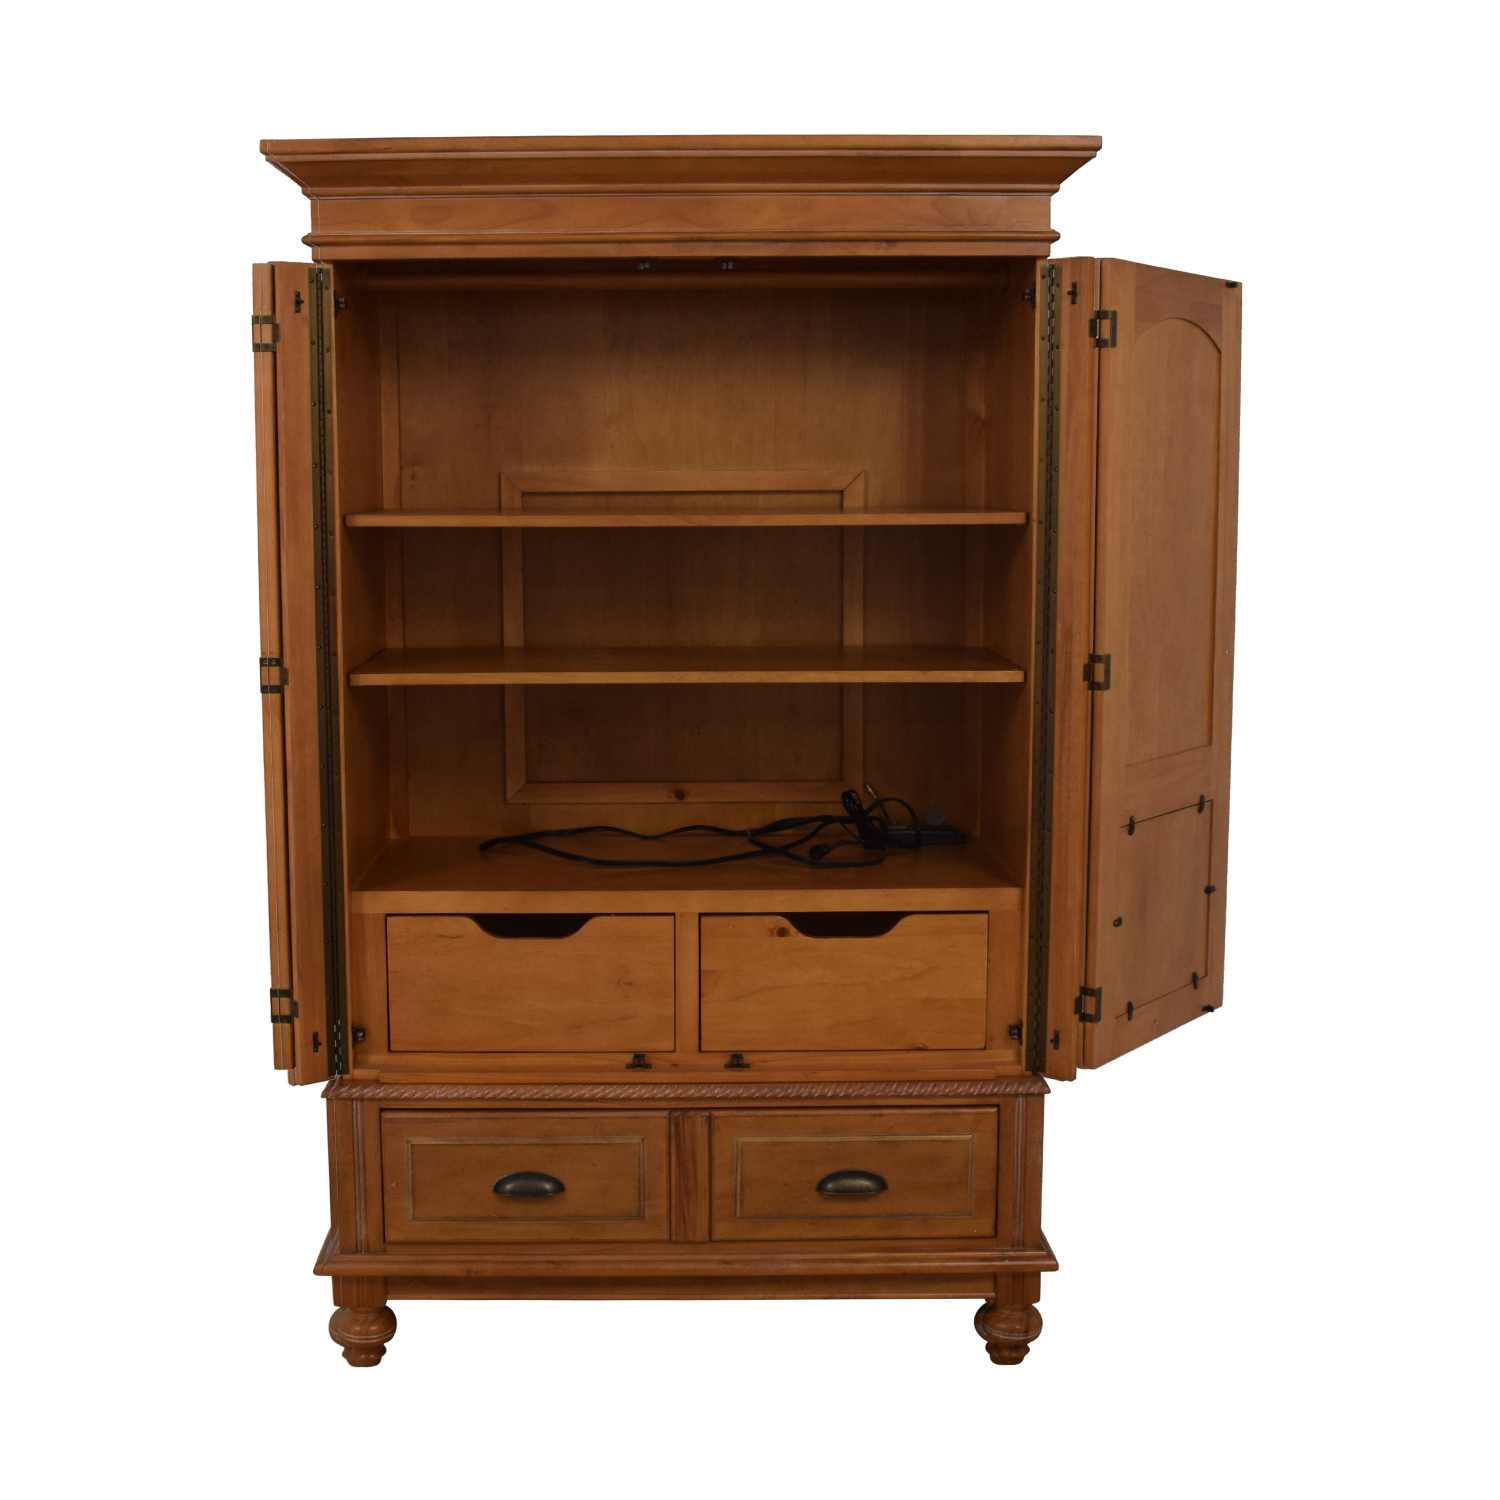 A.R.T. Furniture A.R.T. Furniture Four-Drawer Wood Wardrobe Armoire dimensions